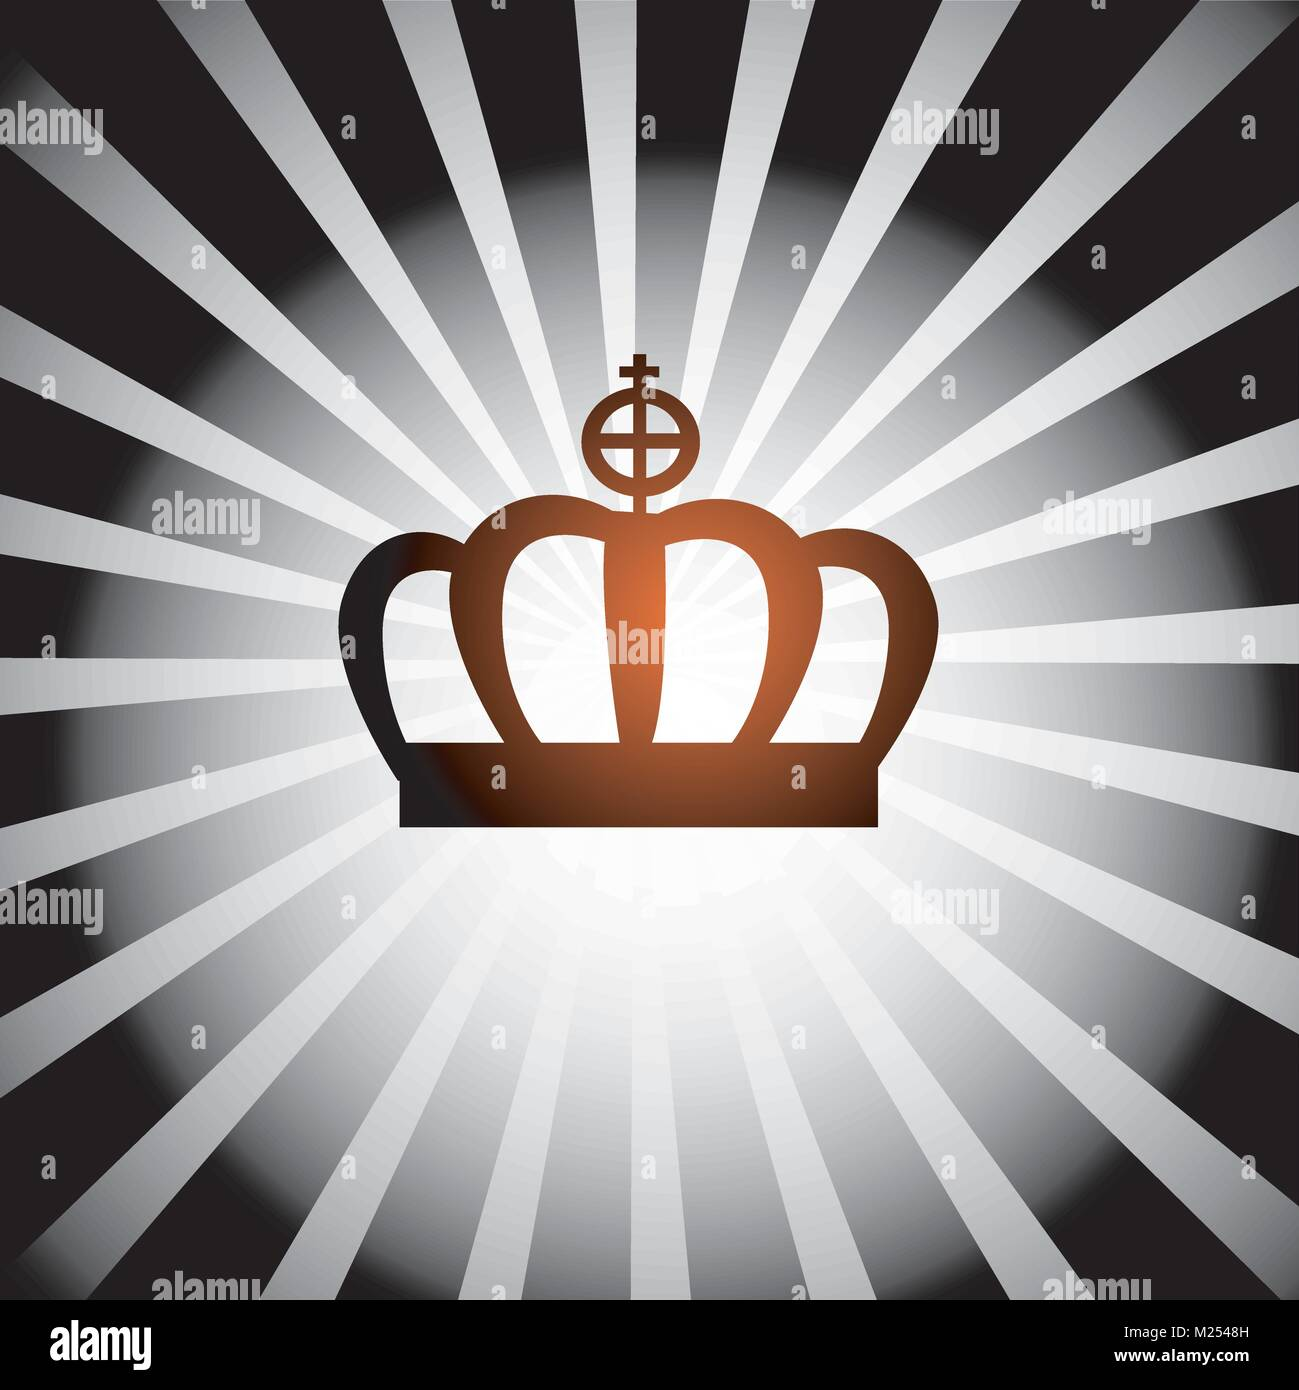 illustration of a crown - Stock Vector